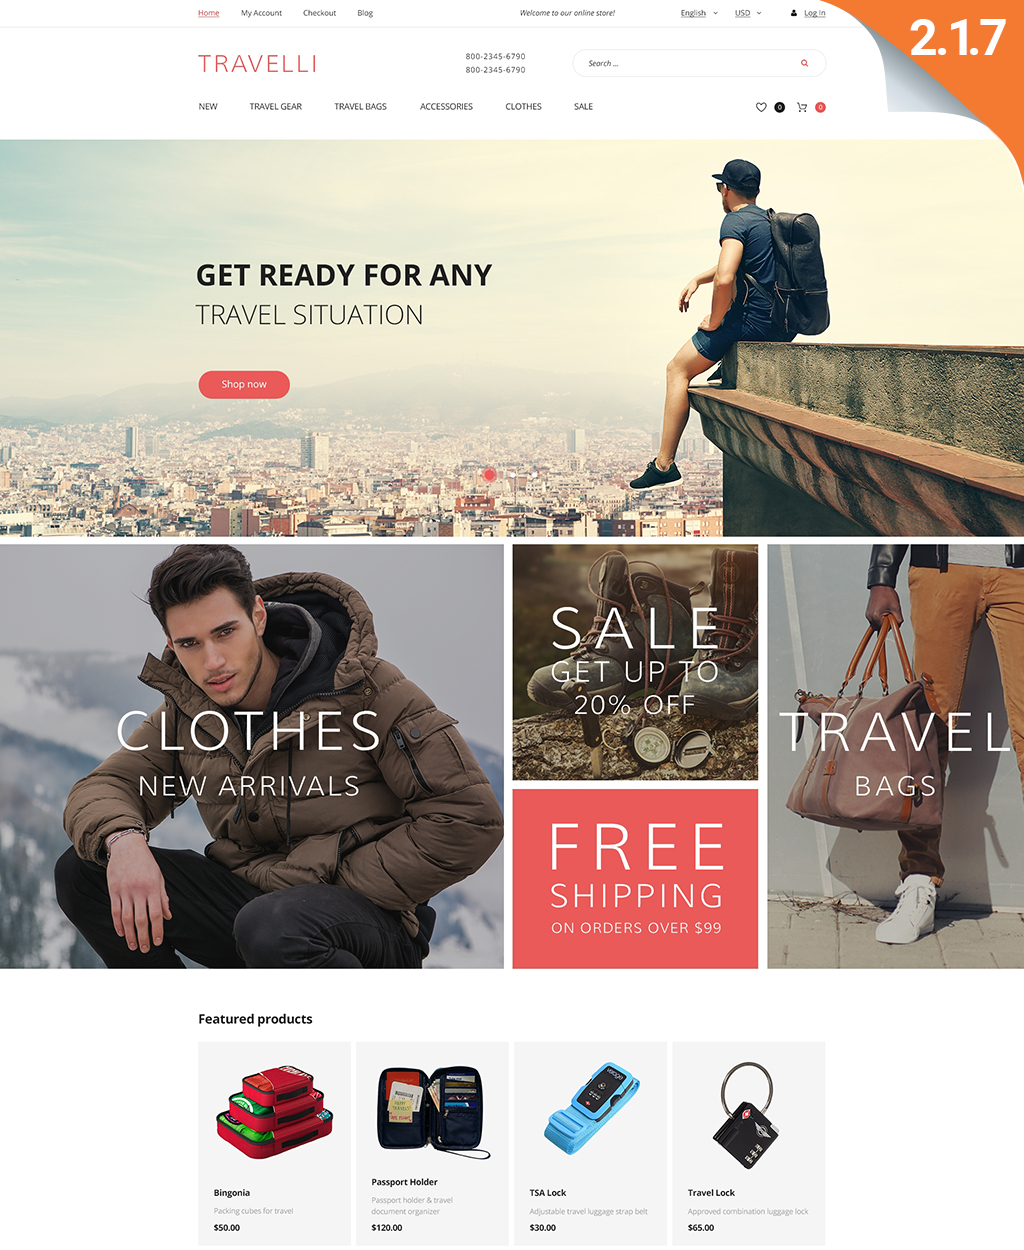 Travelli - Travel Equipment & Tourist Gear Magento Theme